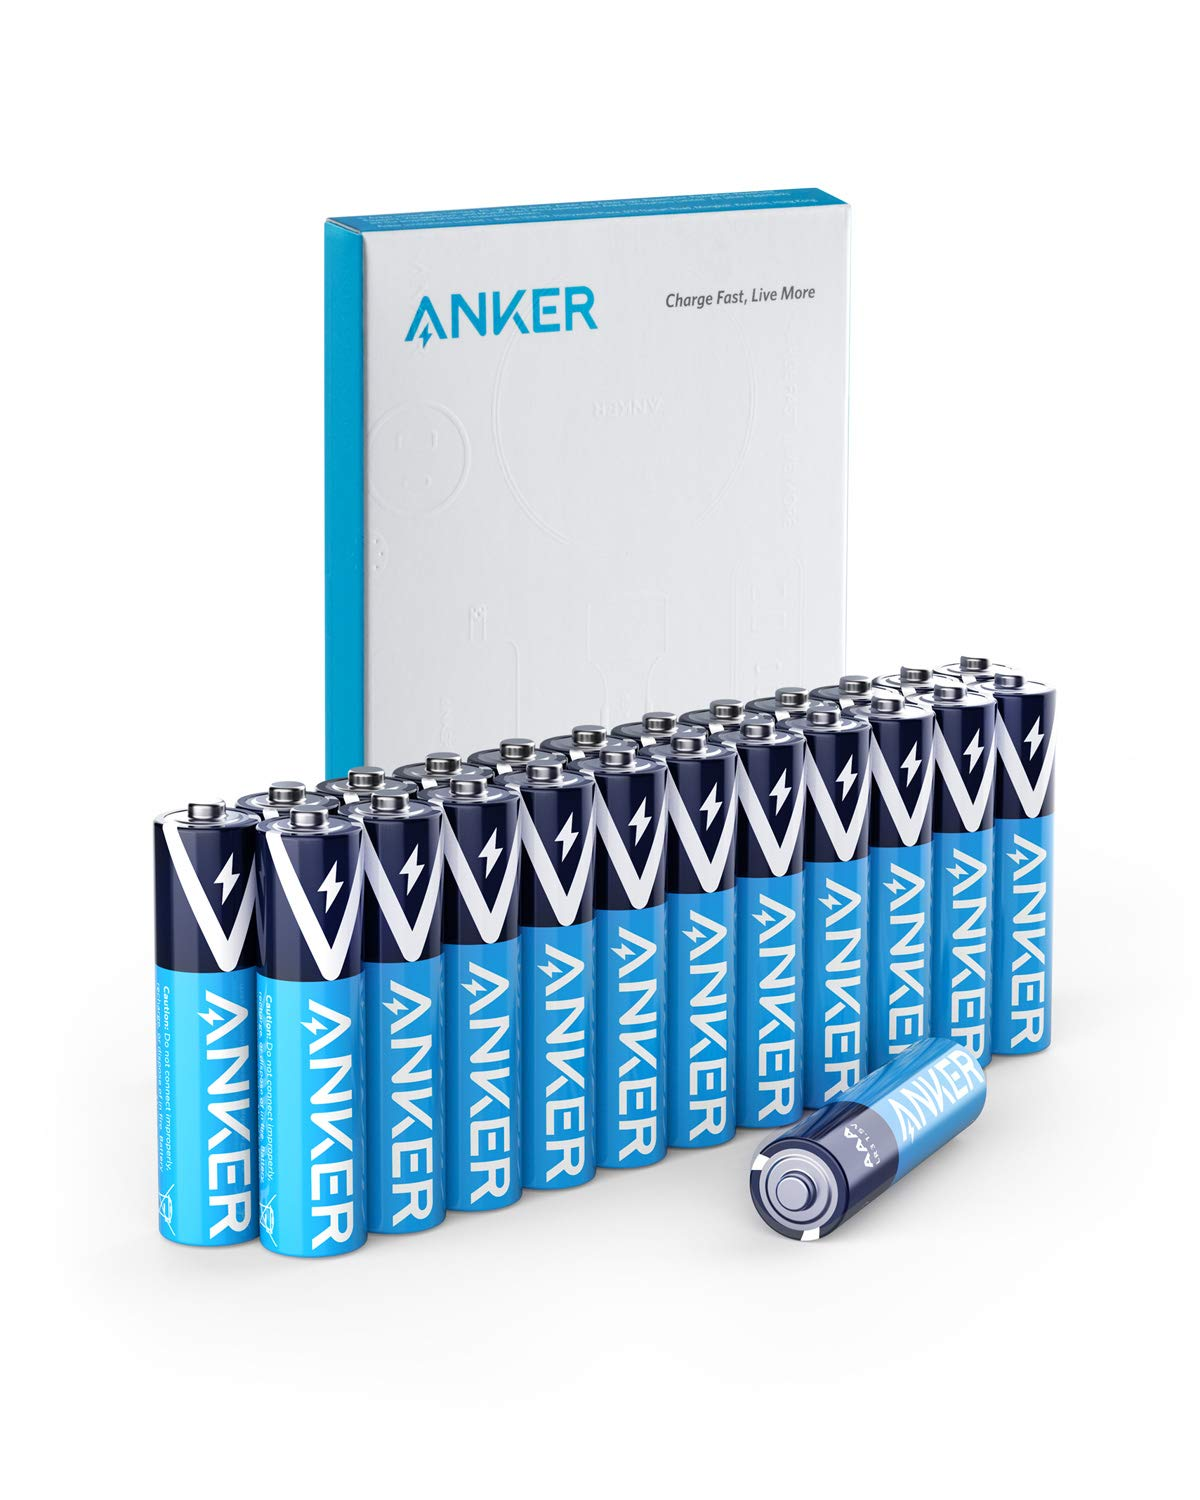 Anker Alkaline AAA Batteries, Long-Lasting & Leak-Proof with PowerLock Technology, High Capacity Triple A Batteries with Adaptive Power and Superior Safety (24-Pack)